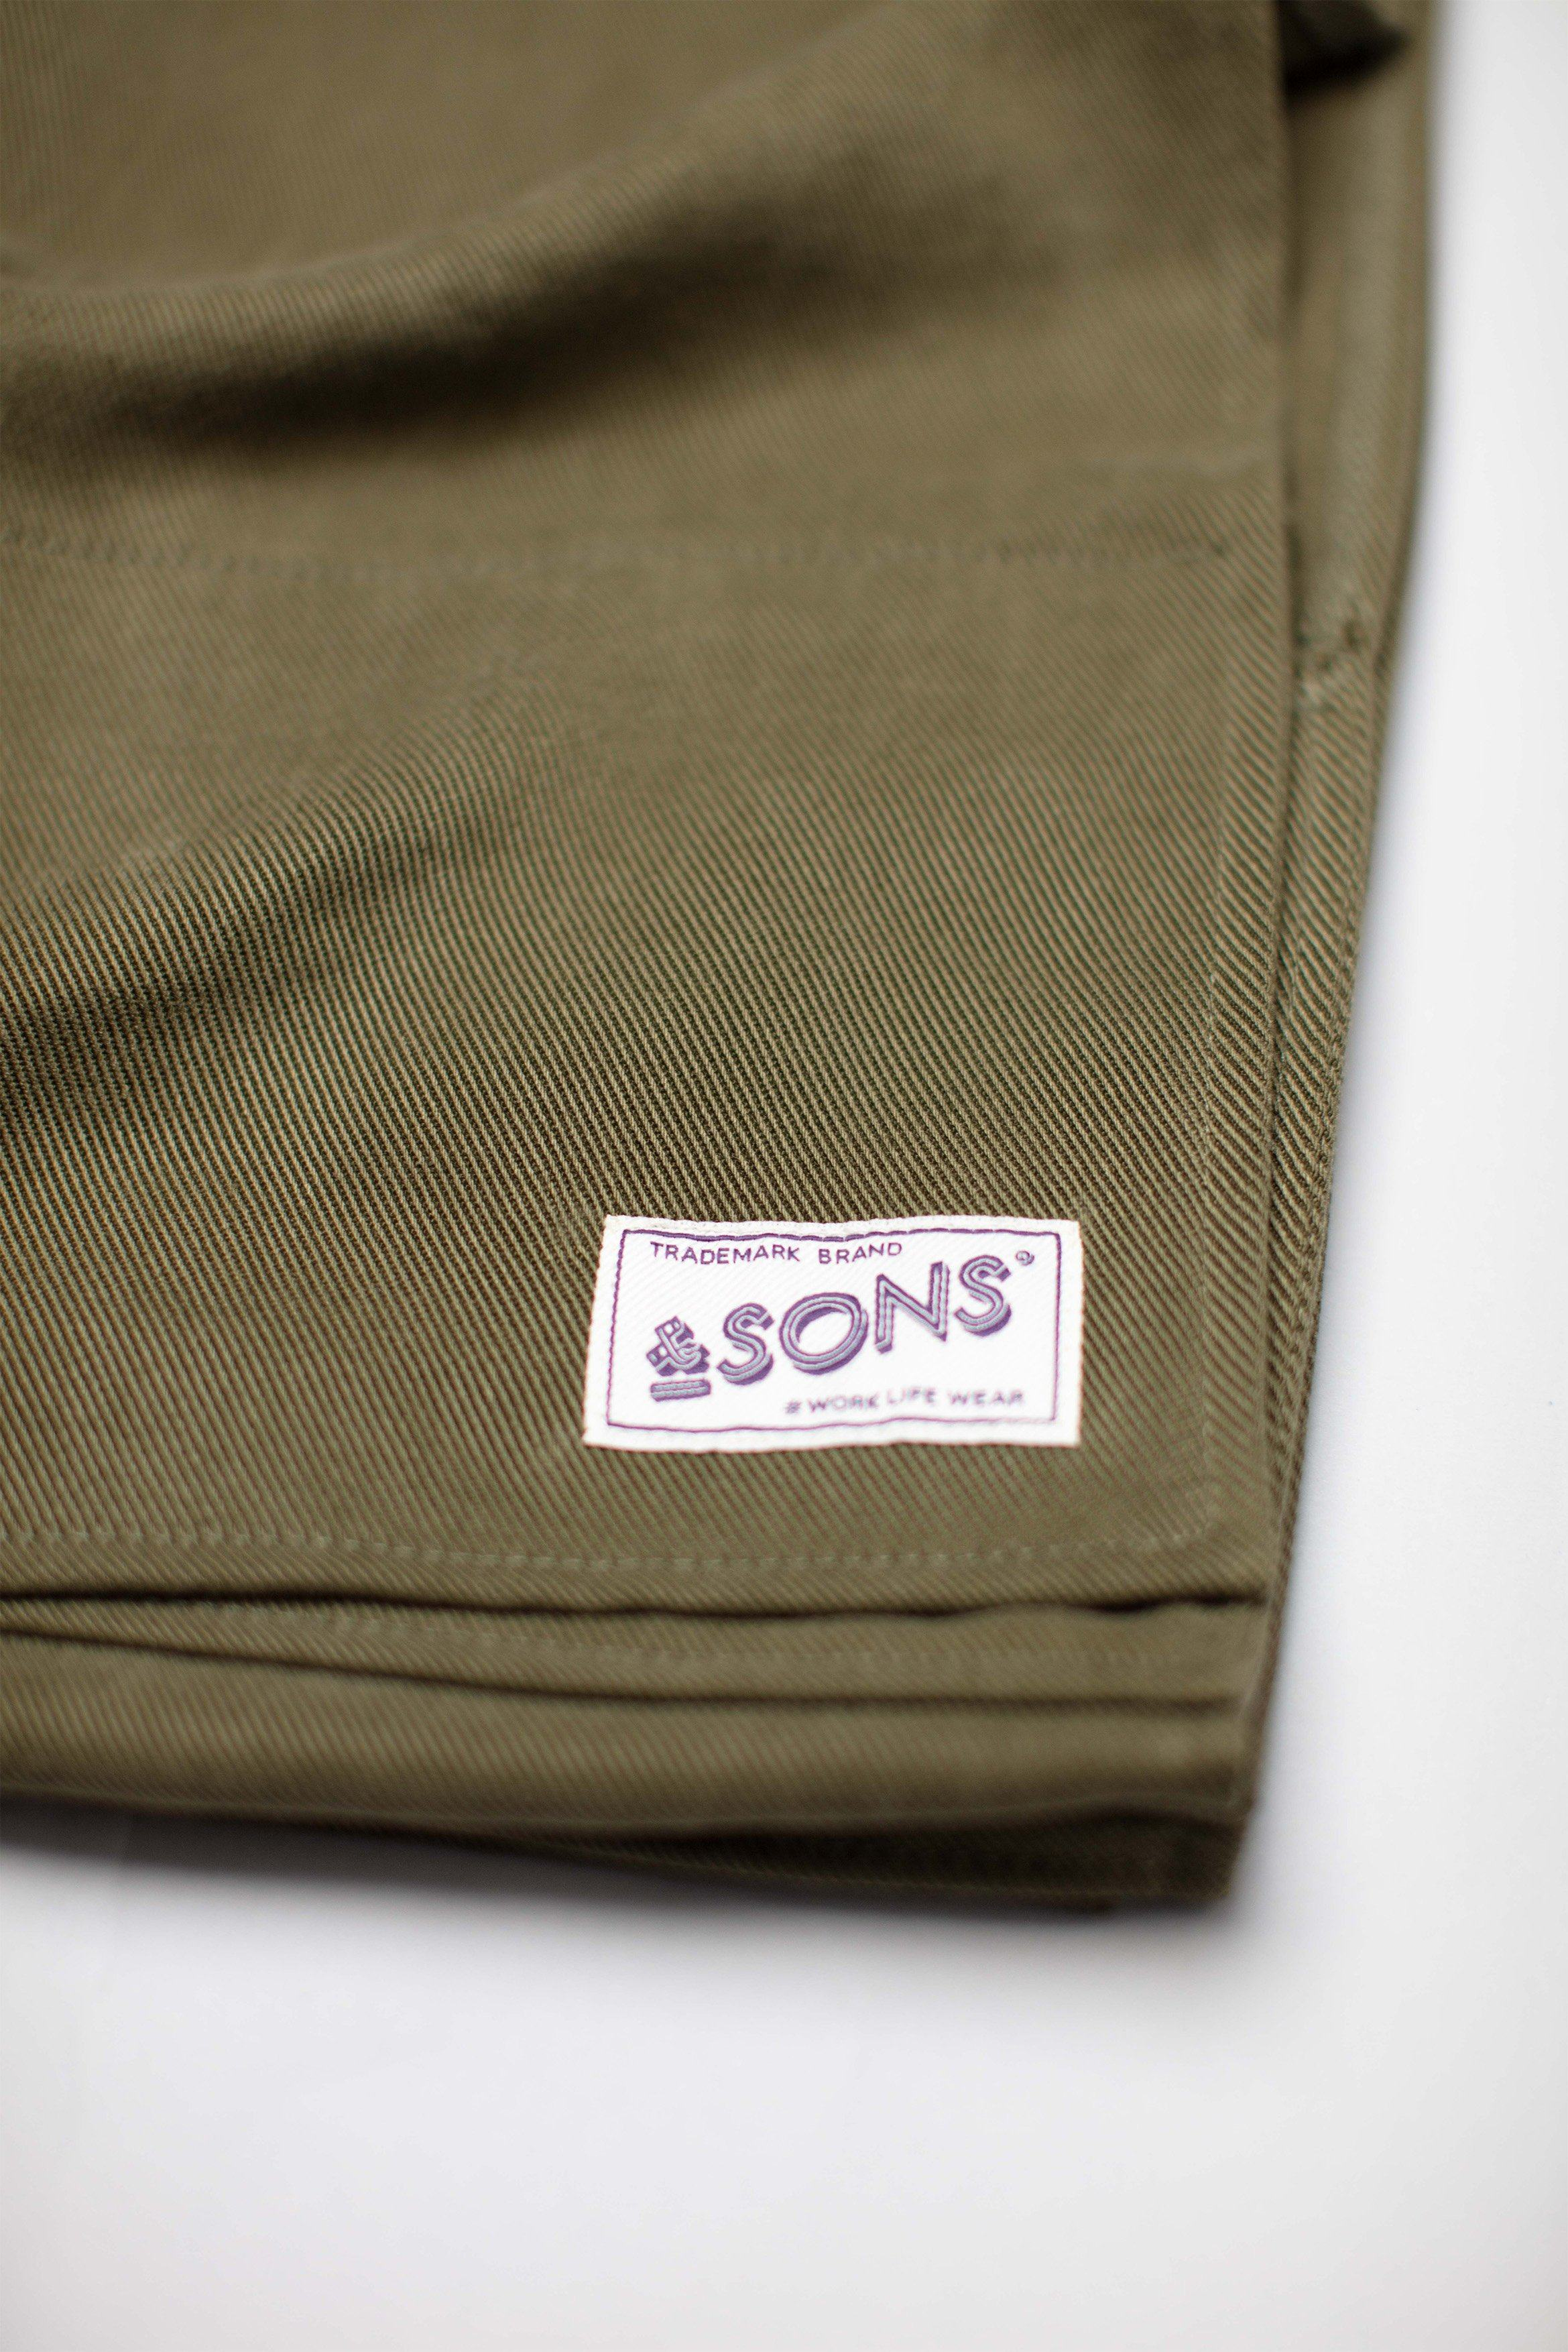 &SONS Hemingway Scarf Olive Dust